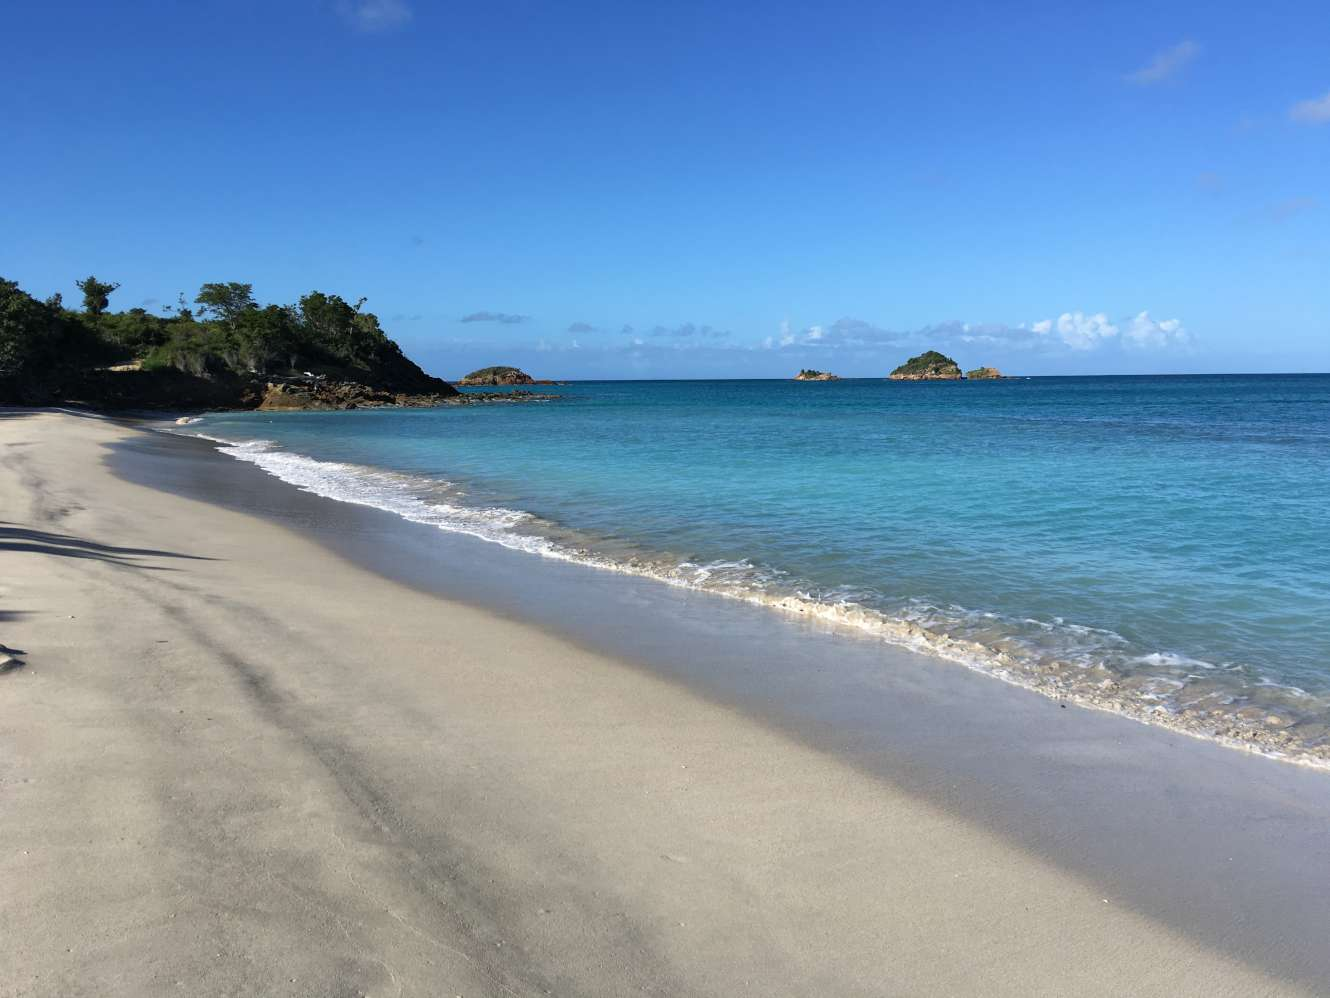 Boat trip and Private Yacht Charter, Antigua island paradise, Carried Away, snorkelling